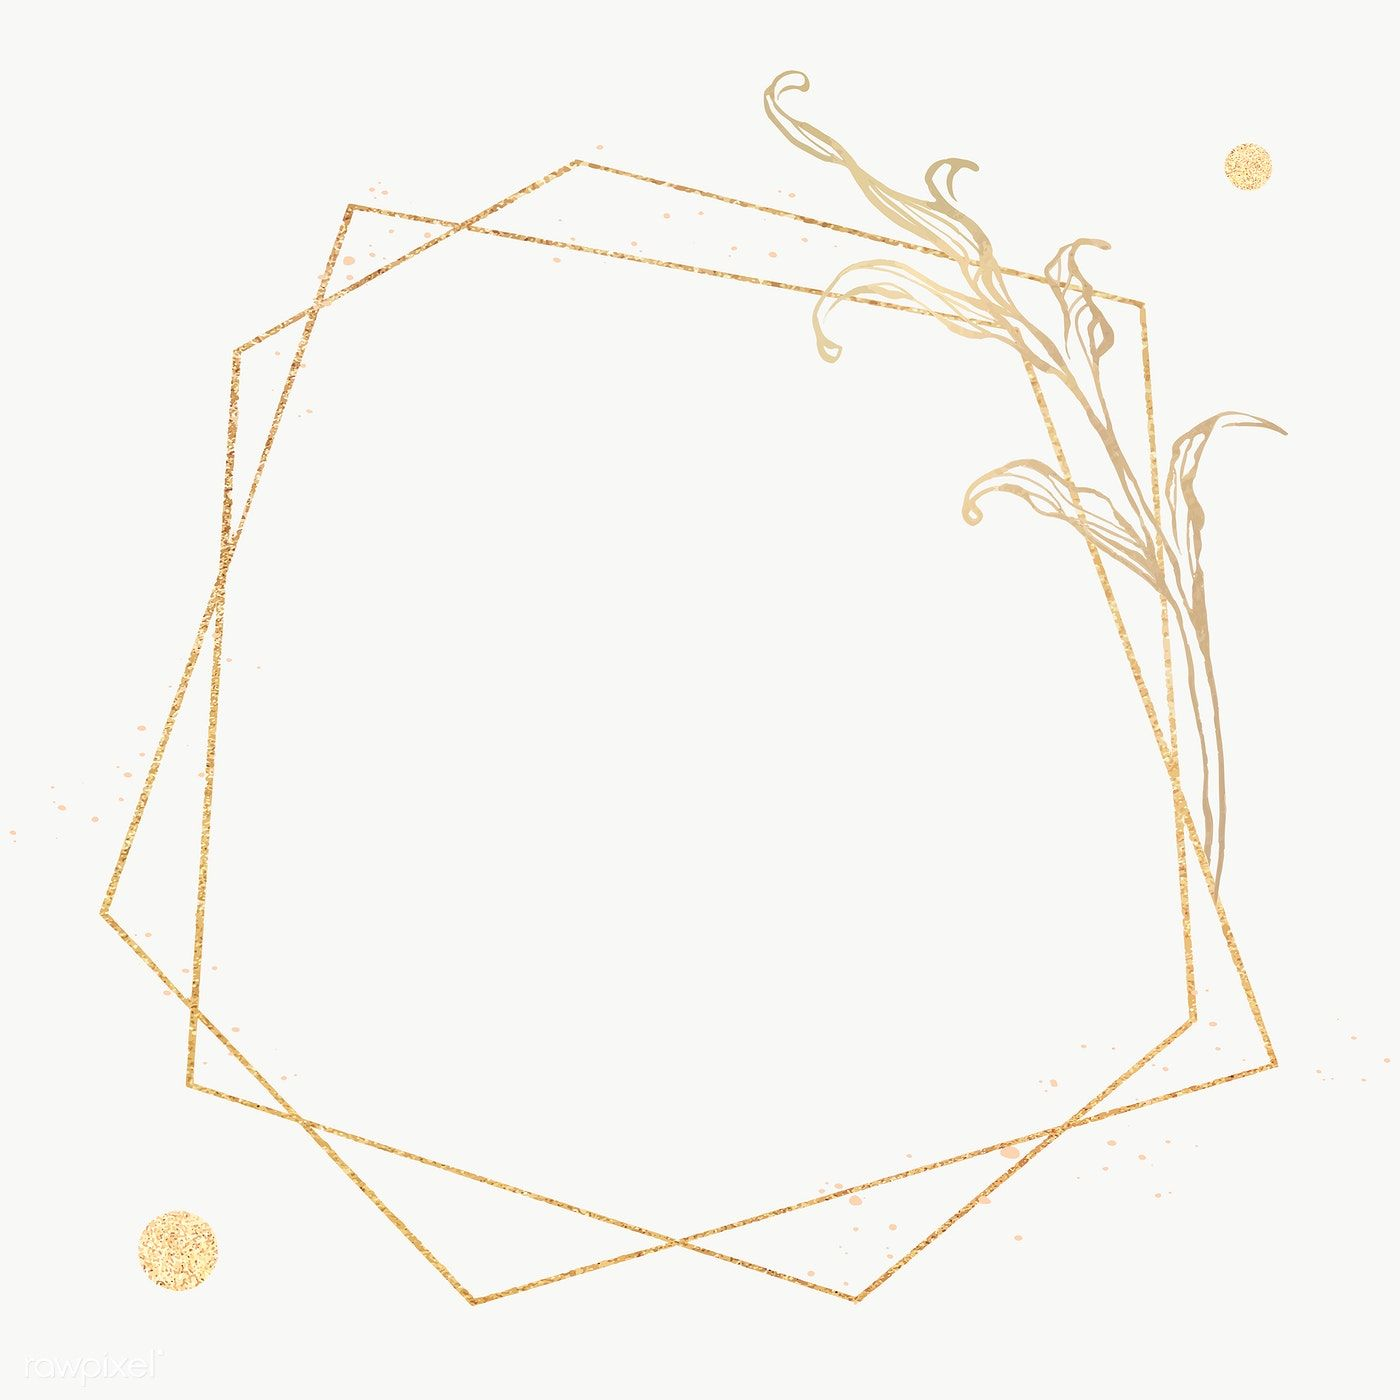 Download Premium Png Of Gold Frame With Leaves Outline 2019778 Leaf Outline Gold Frame Flower Outline